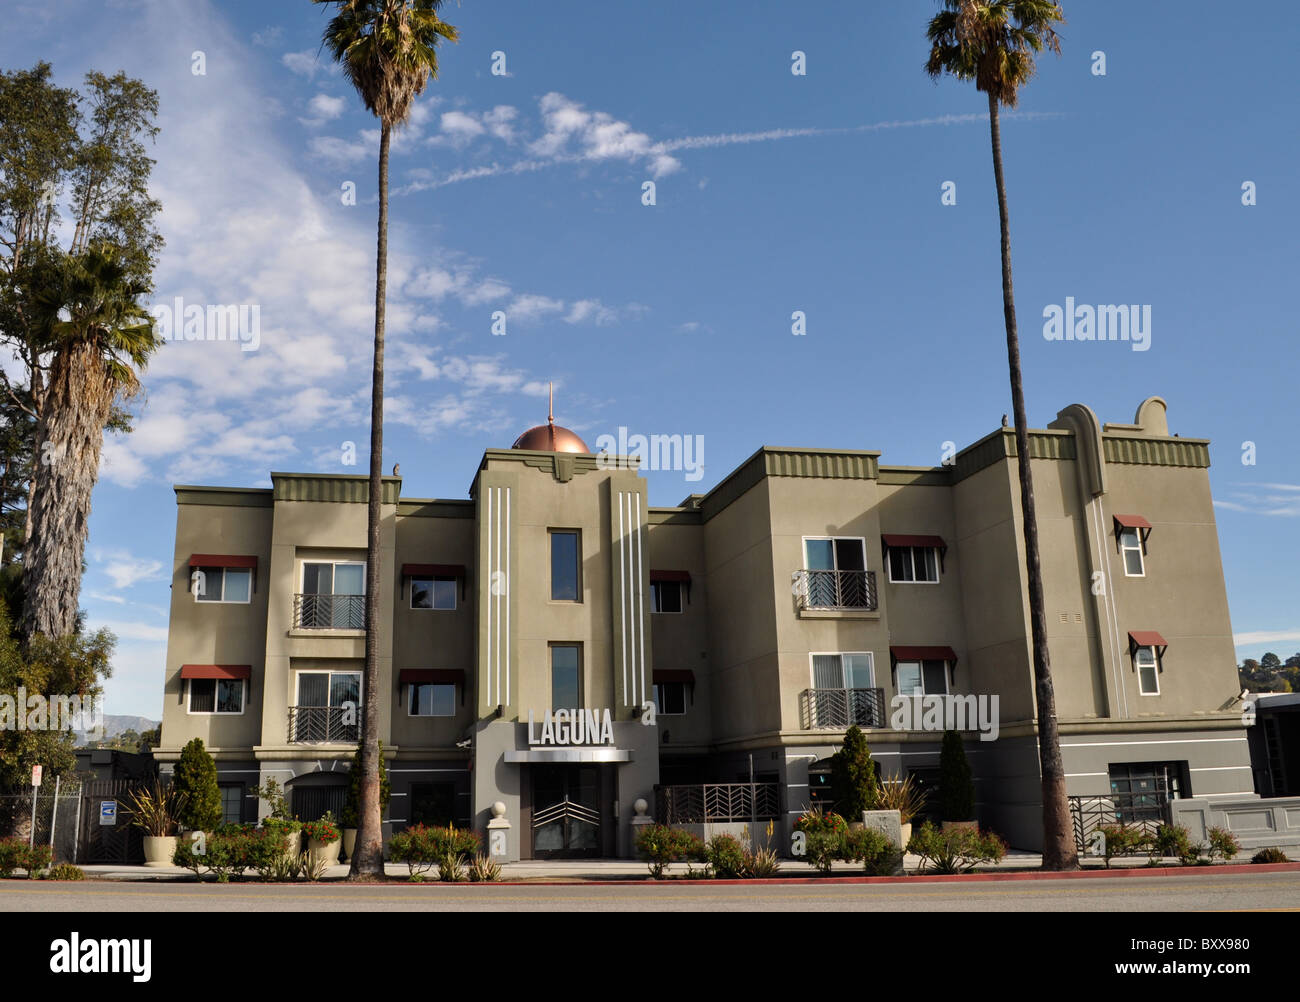 Laguna art deco apartments, Sunset boulevard, Los Angeles Stock ...